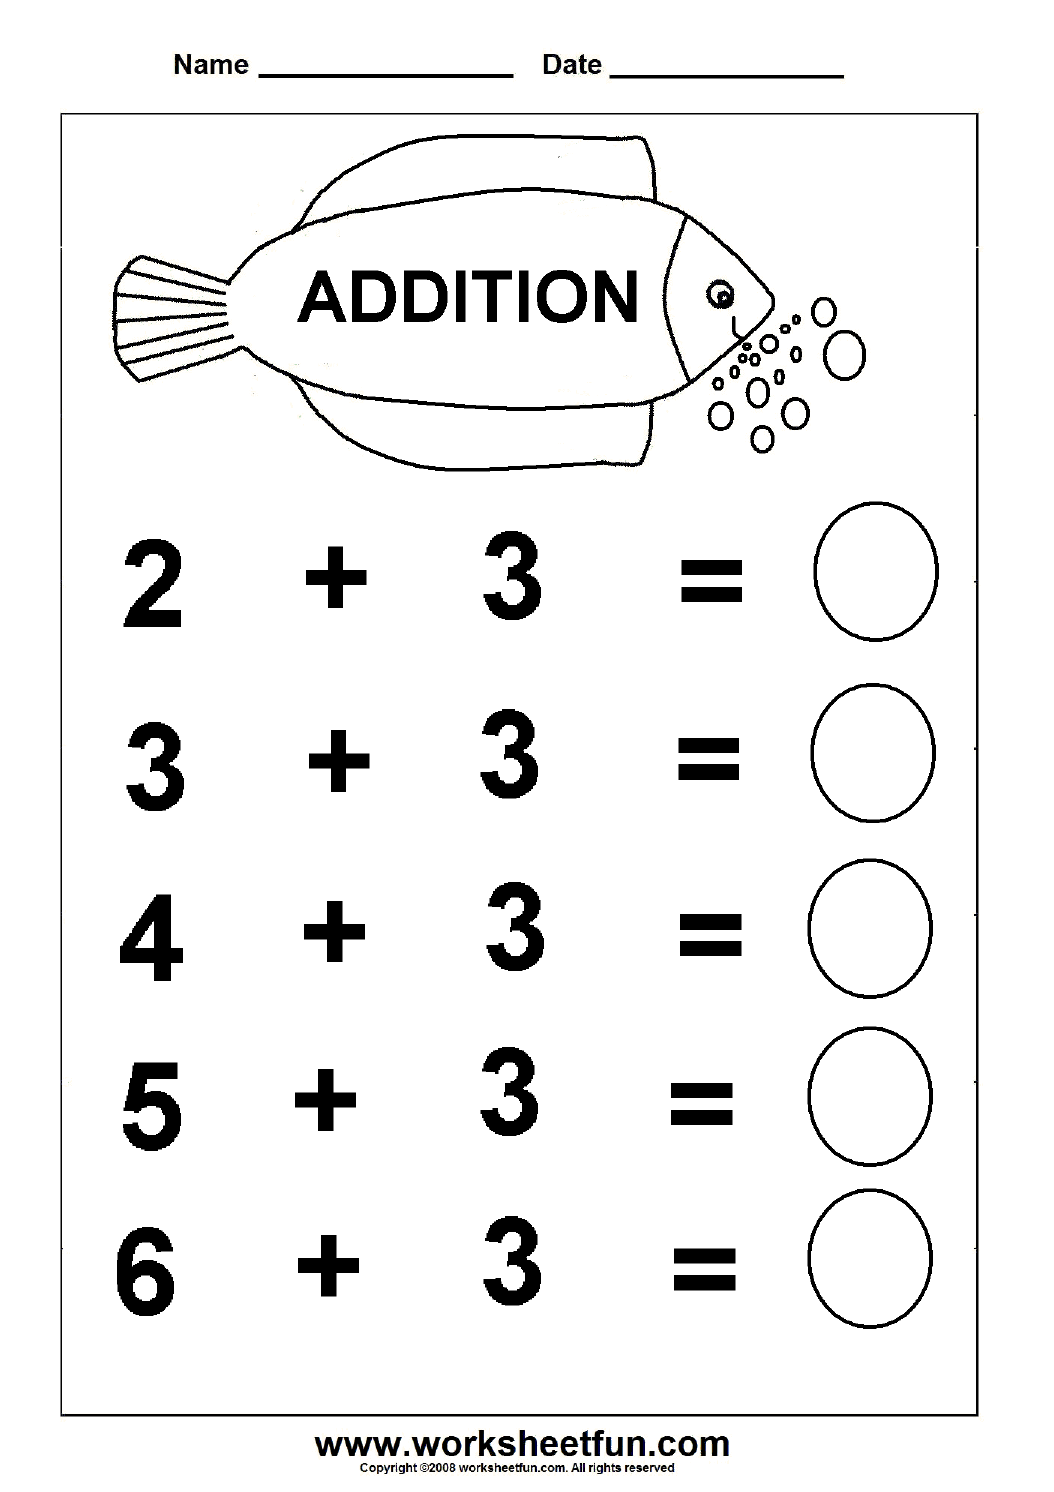 Addition Basic Addition Facts FREE Printable Worksheets – Worksheet for Addition